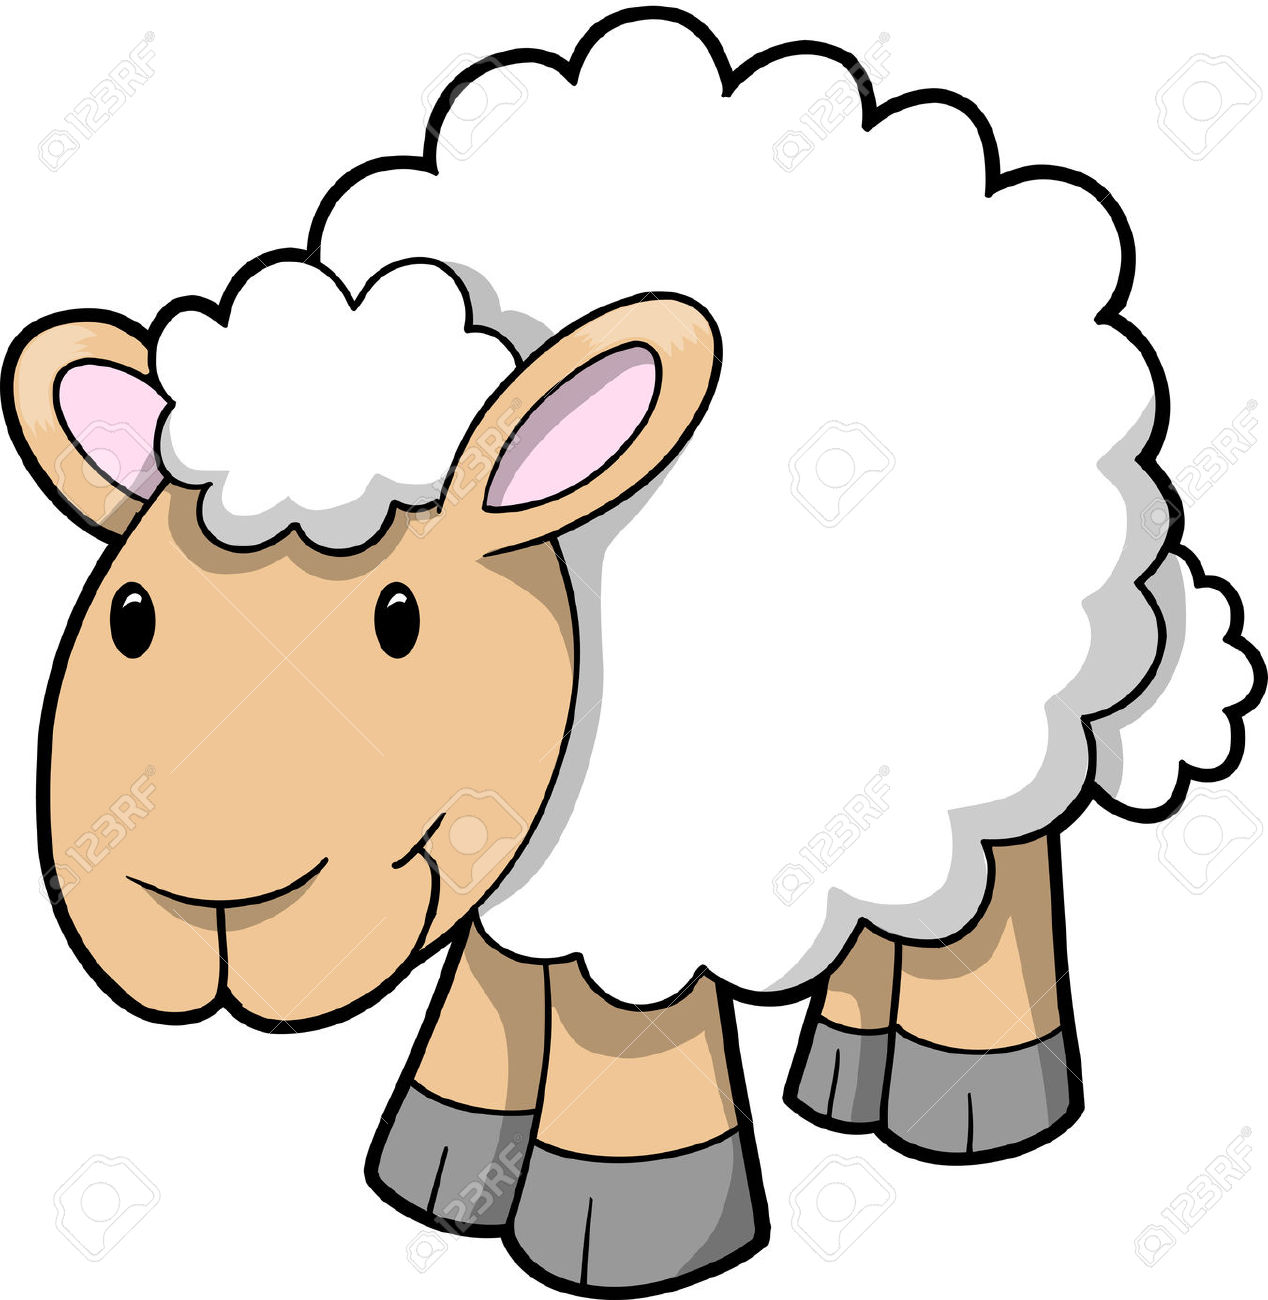 clipart image of sheep #16